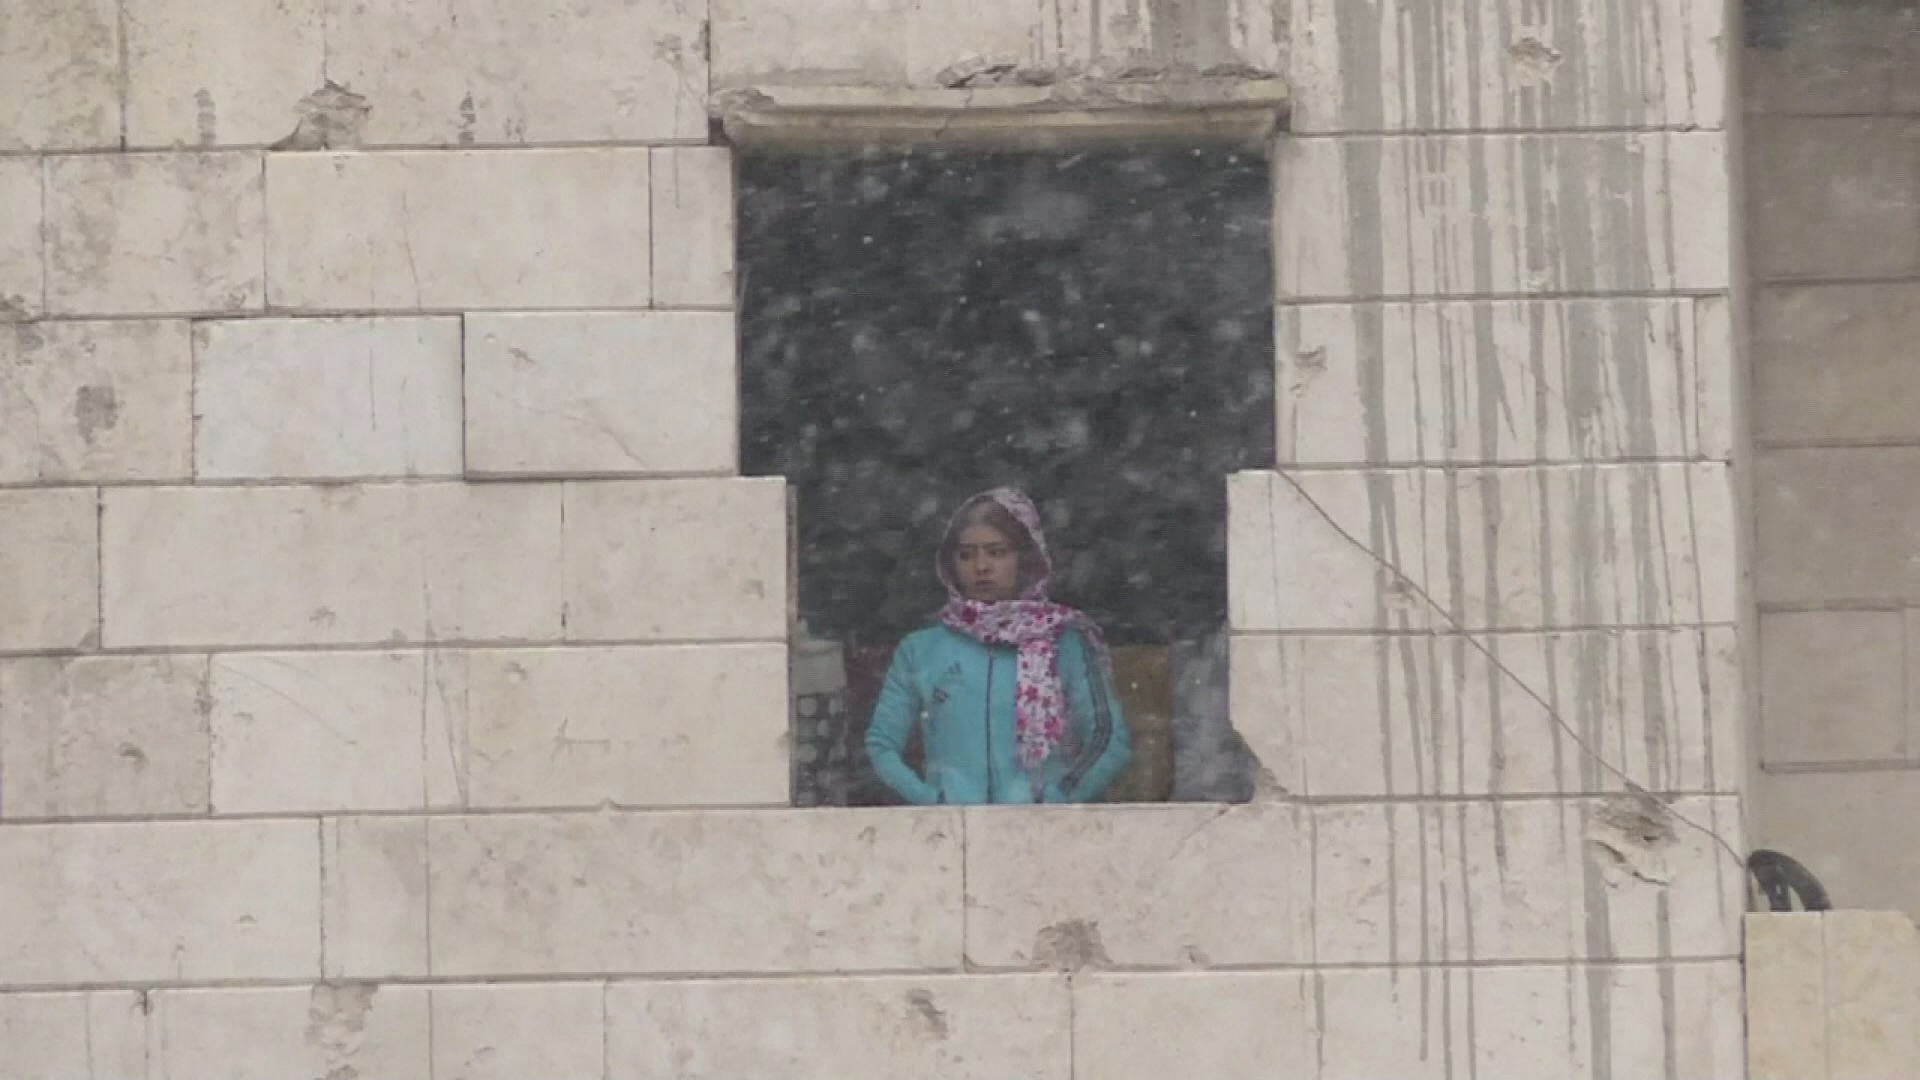 Lady in the snow in Aleppo